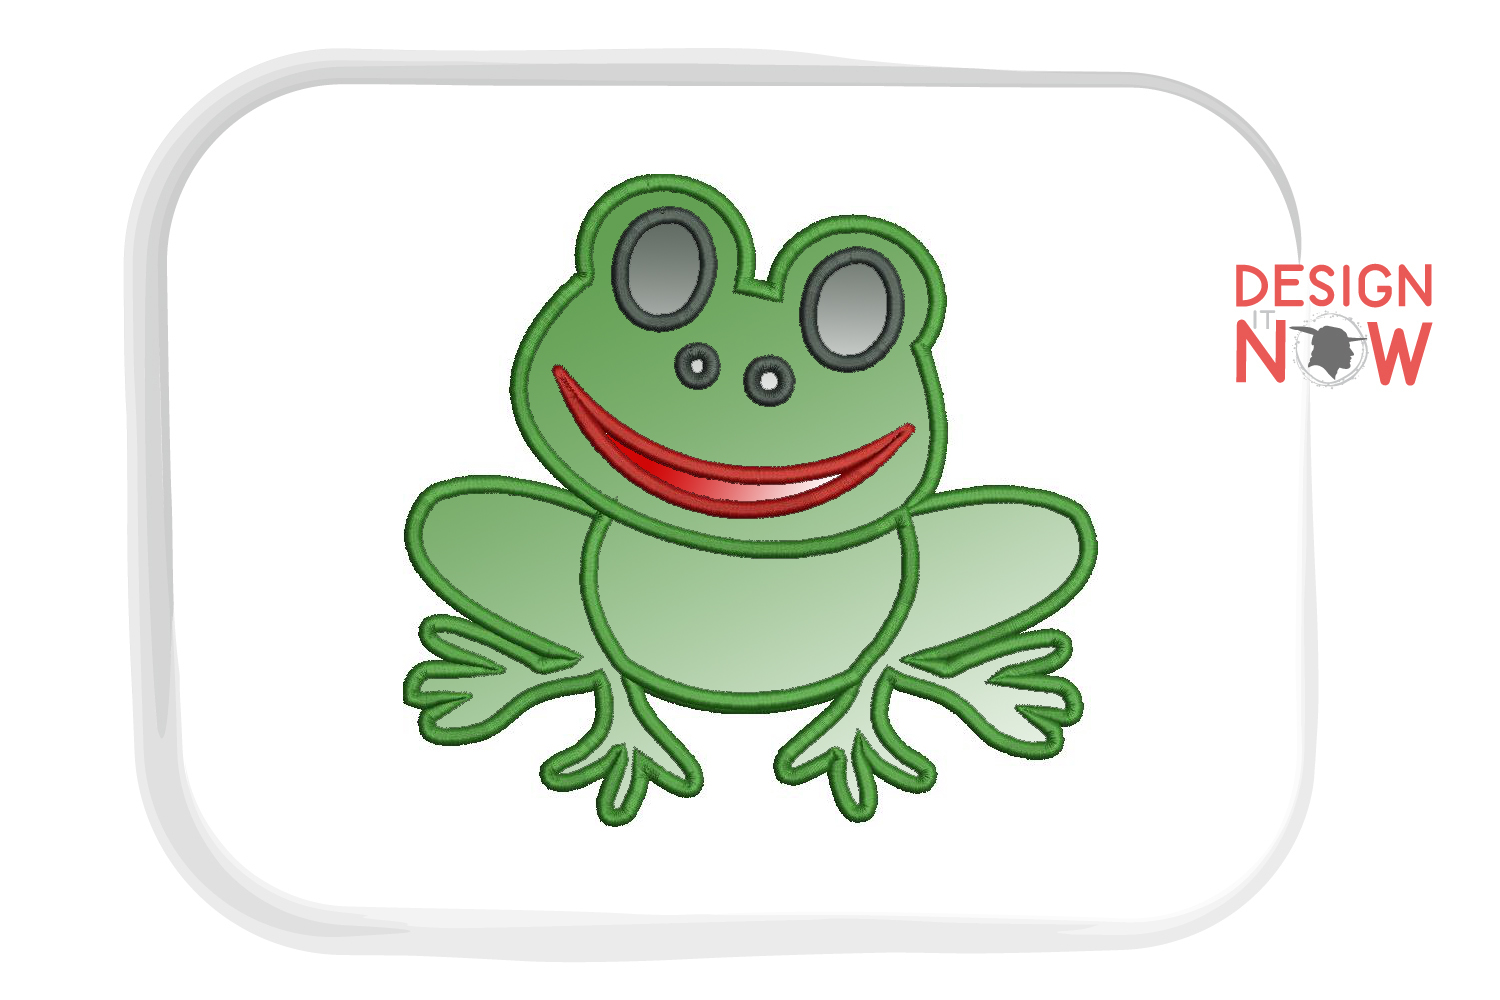 Frog Applique Embroidery Design, Embroidery Pattern example image 4